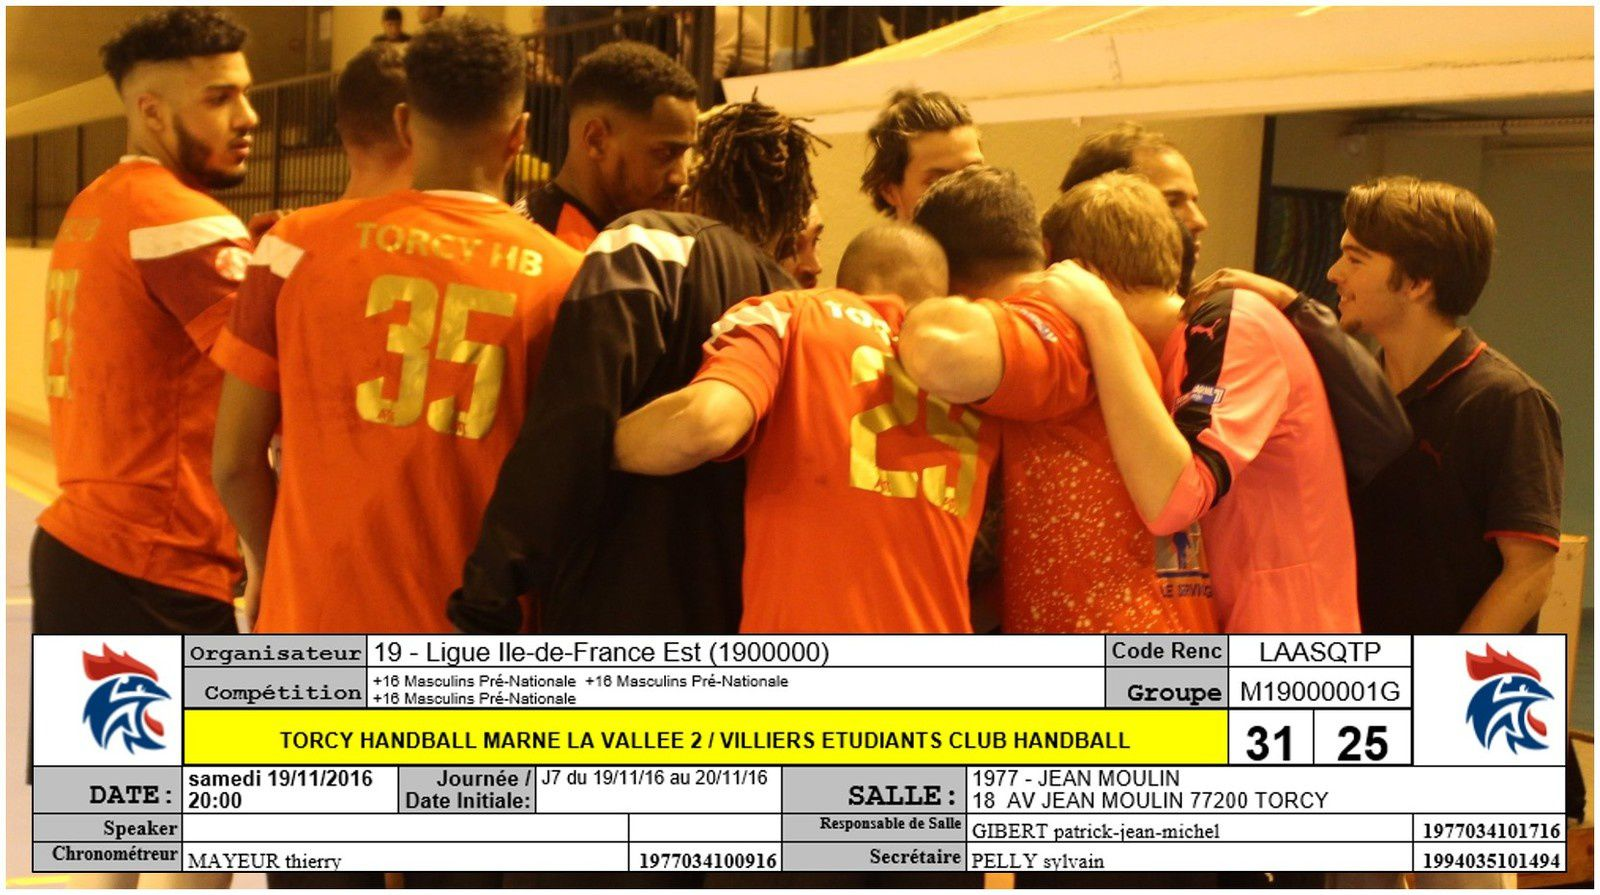 THBMLV 2 vs VILLIERS-SUR-MARNE (Pré-Nationale) 19.11.2016